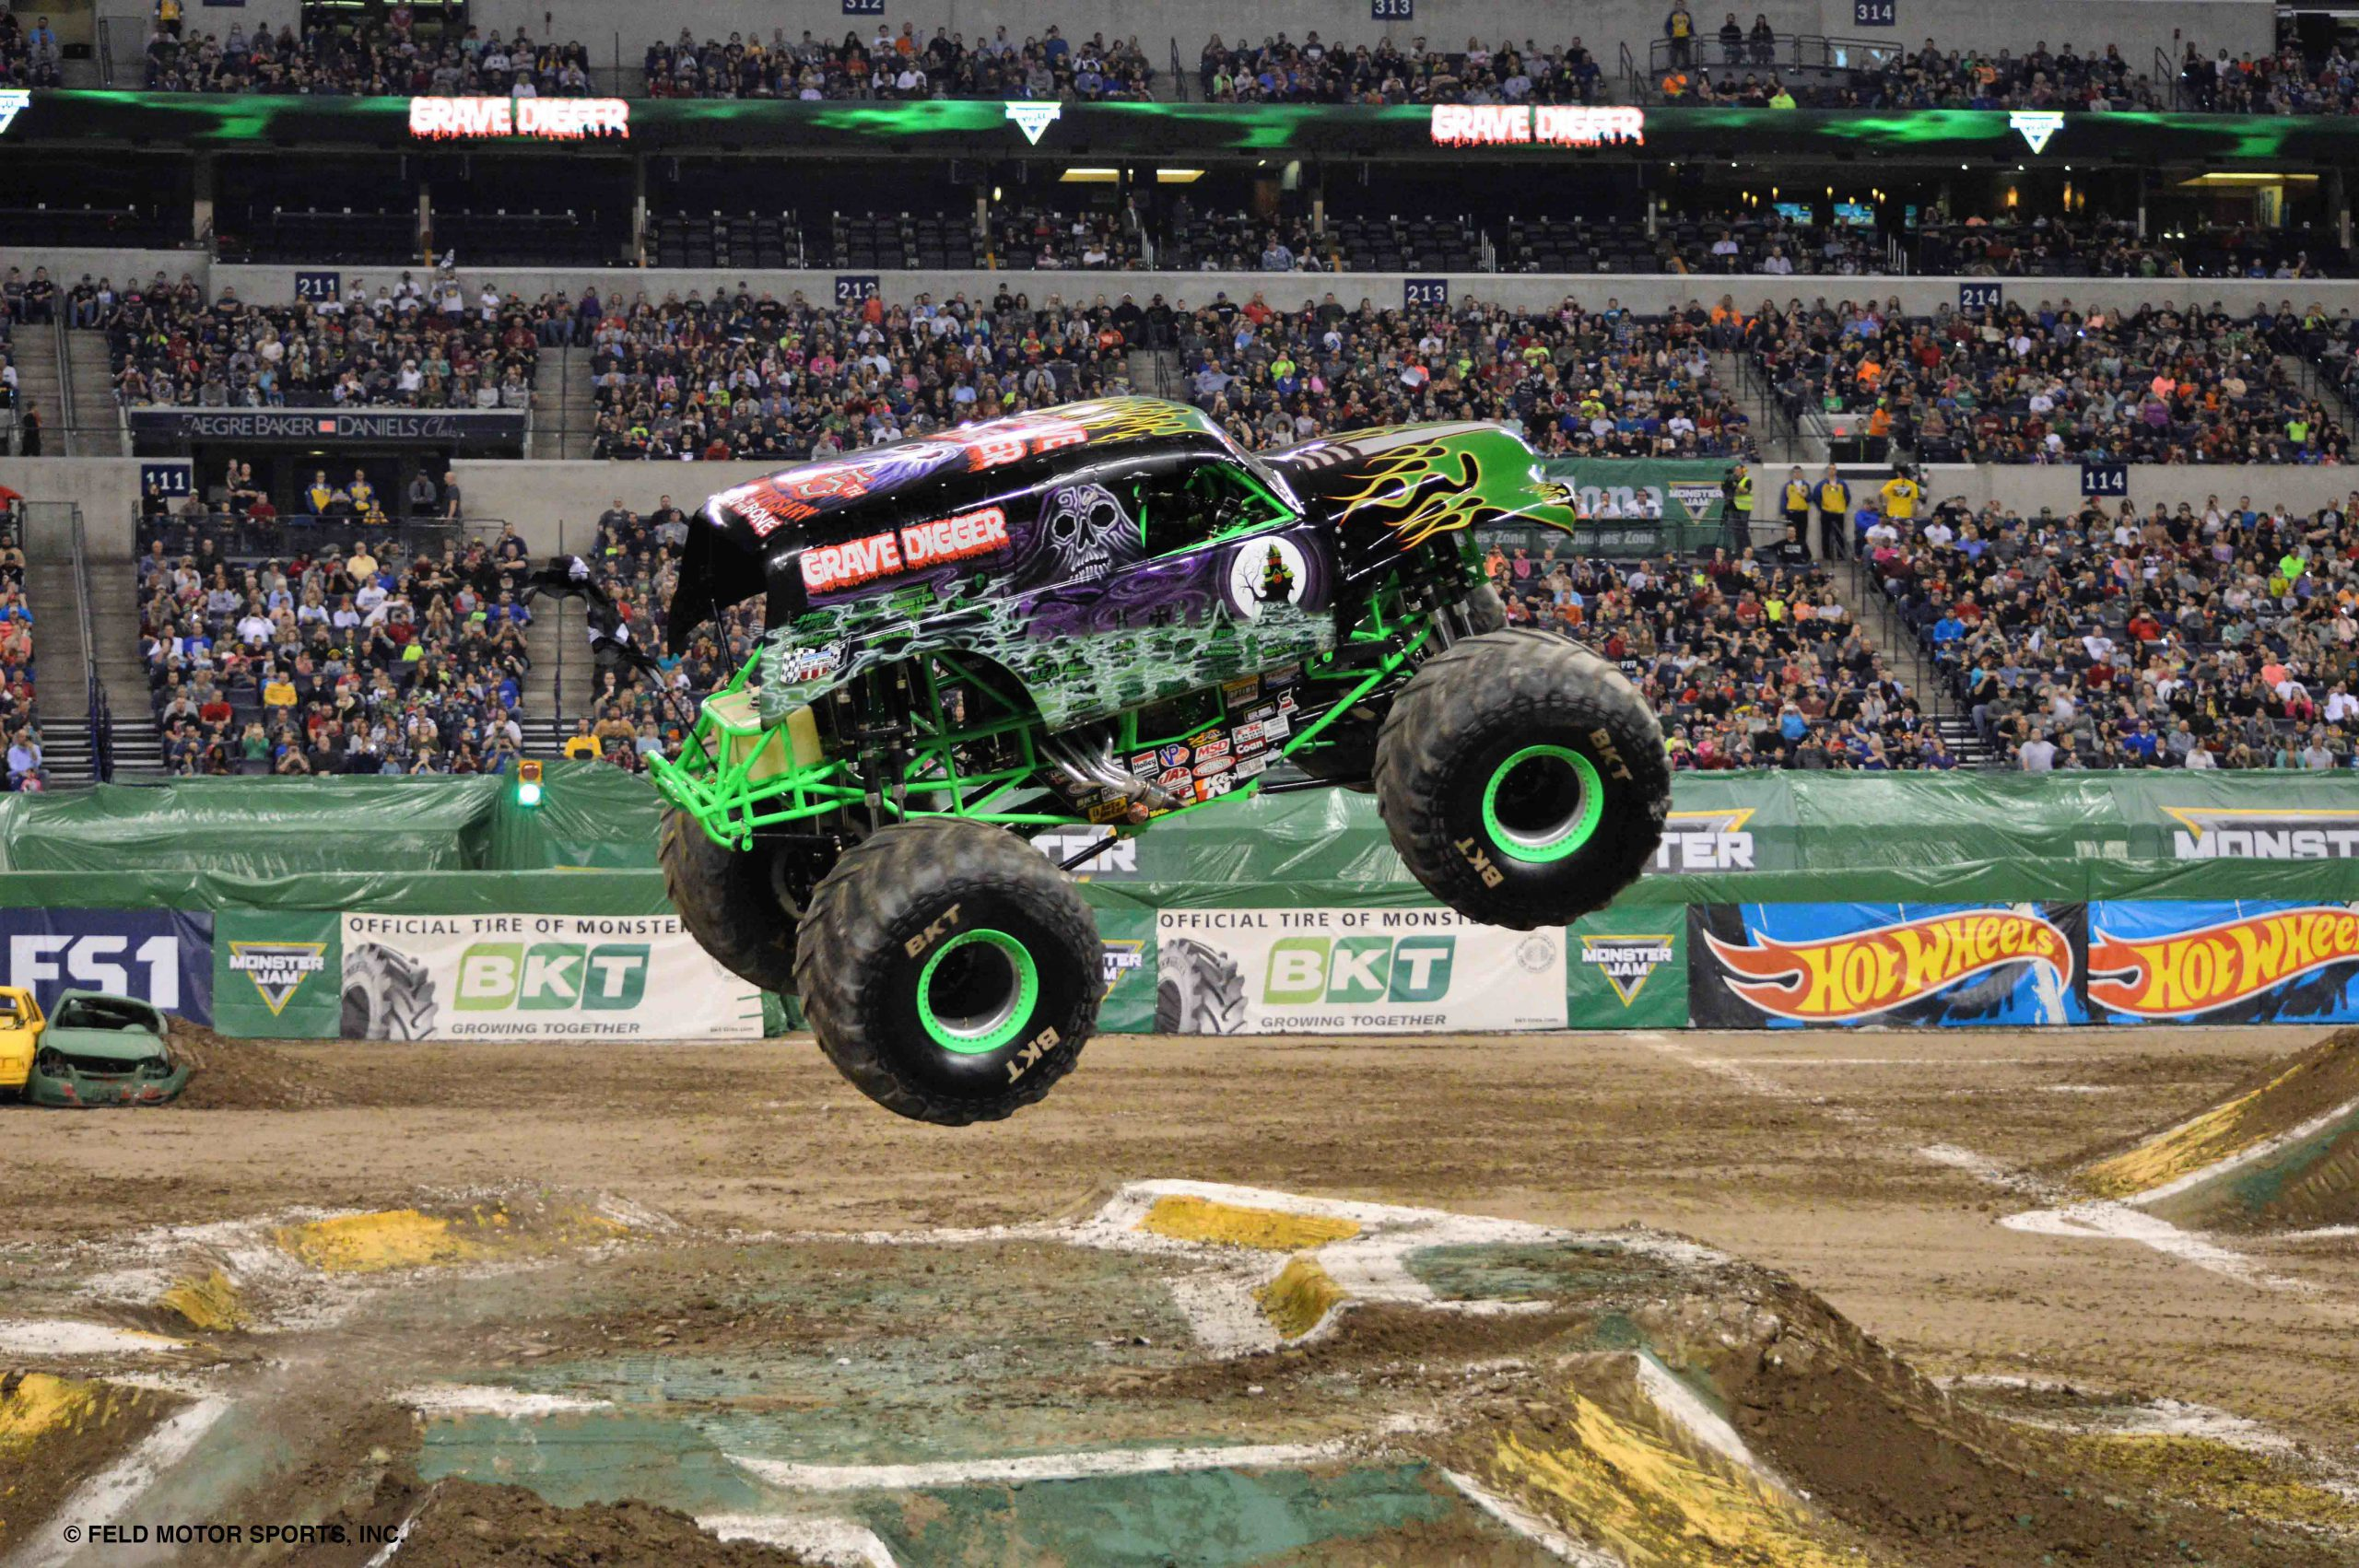 BKT Monster Jam Tire